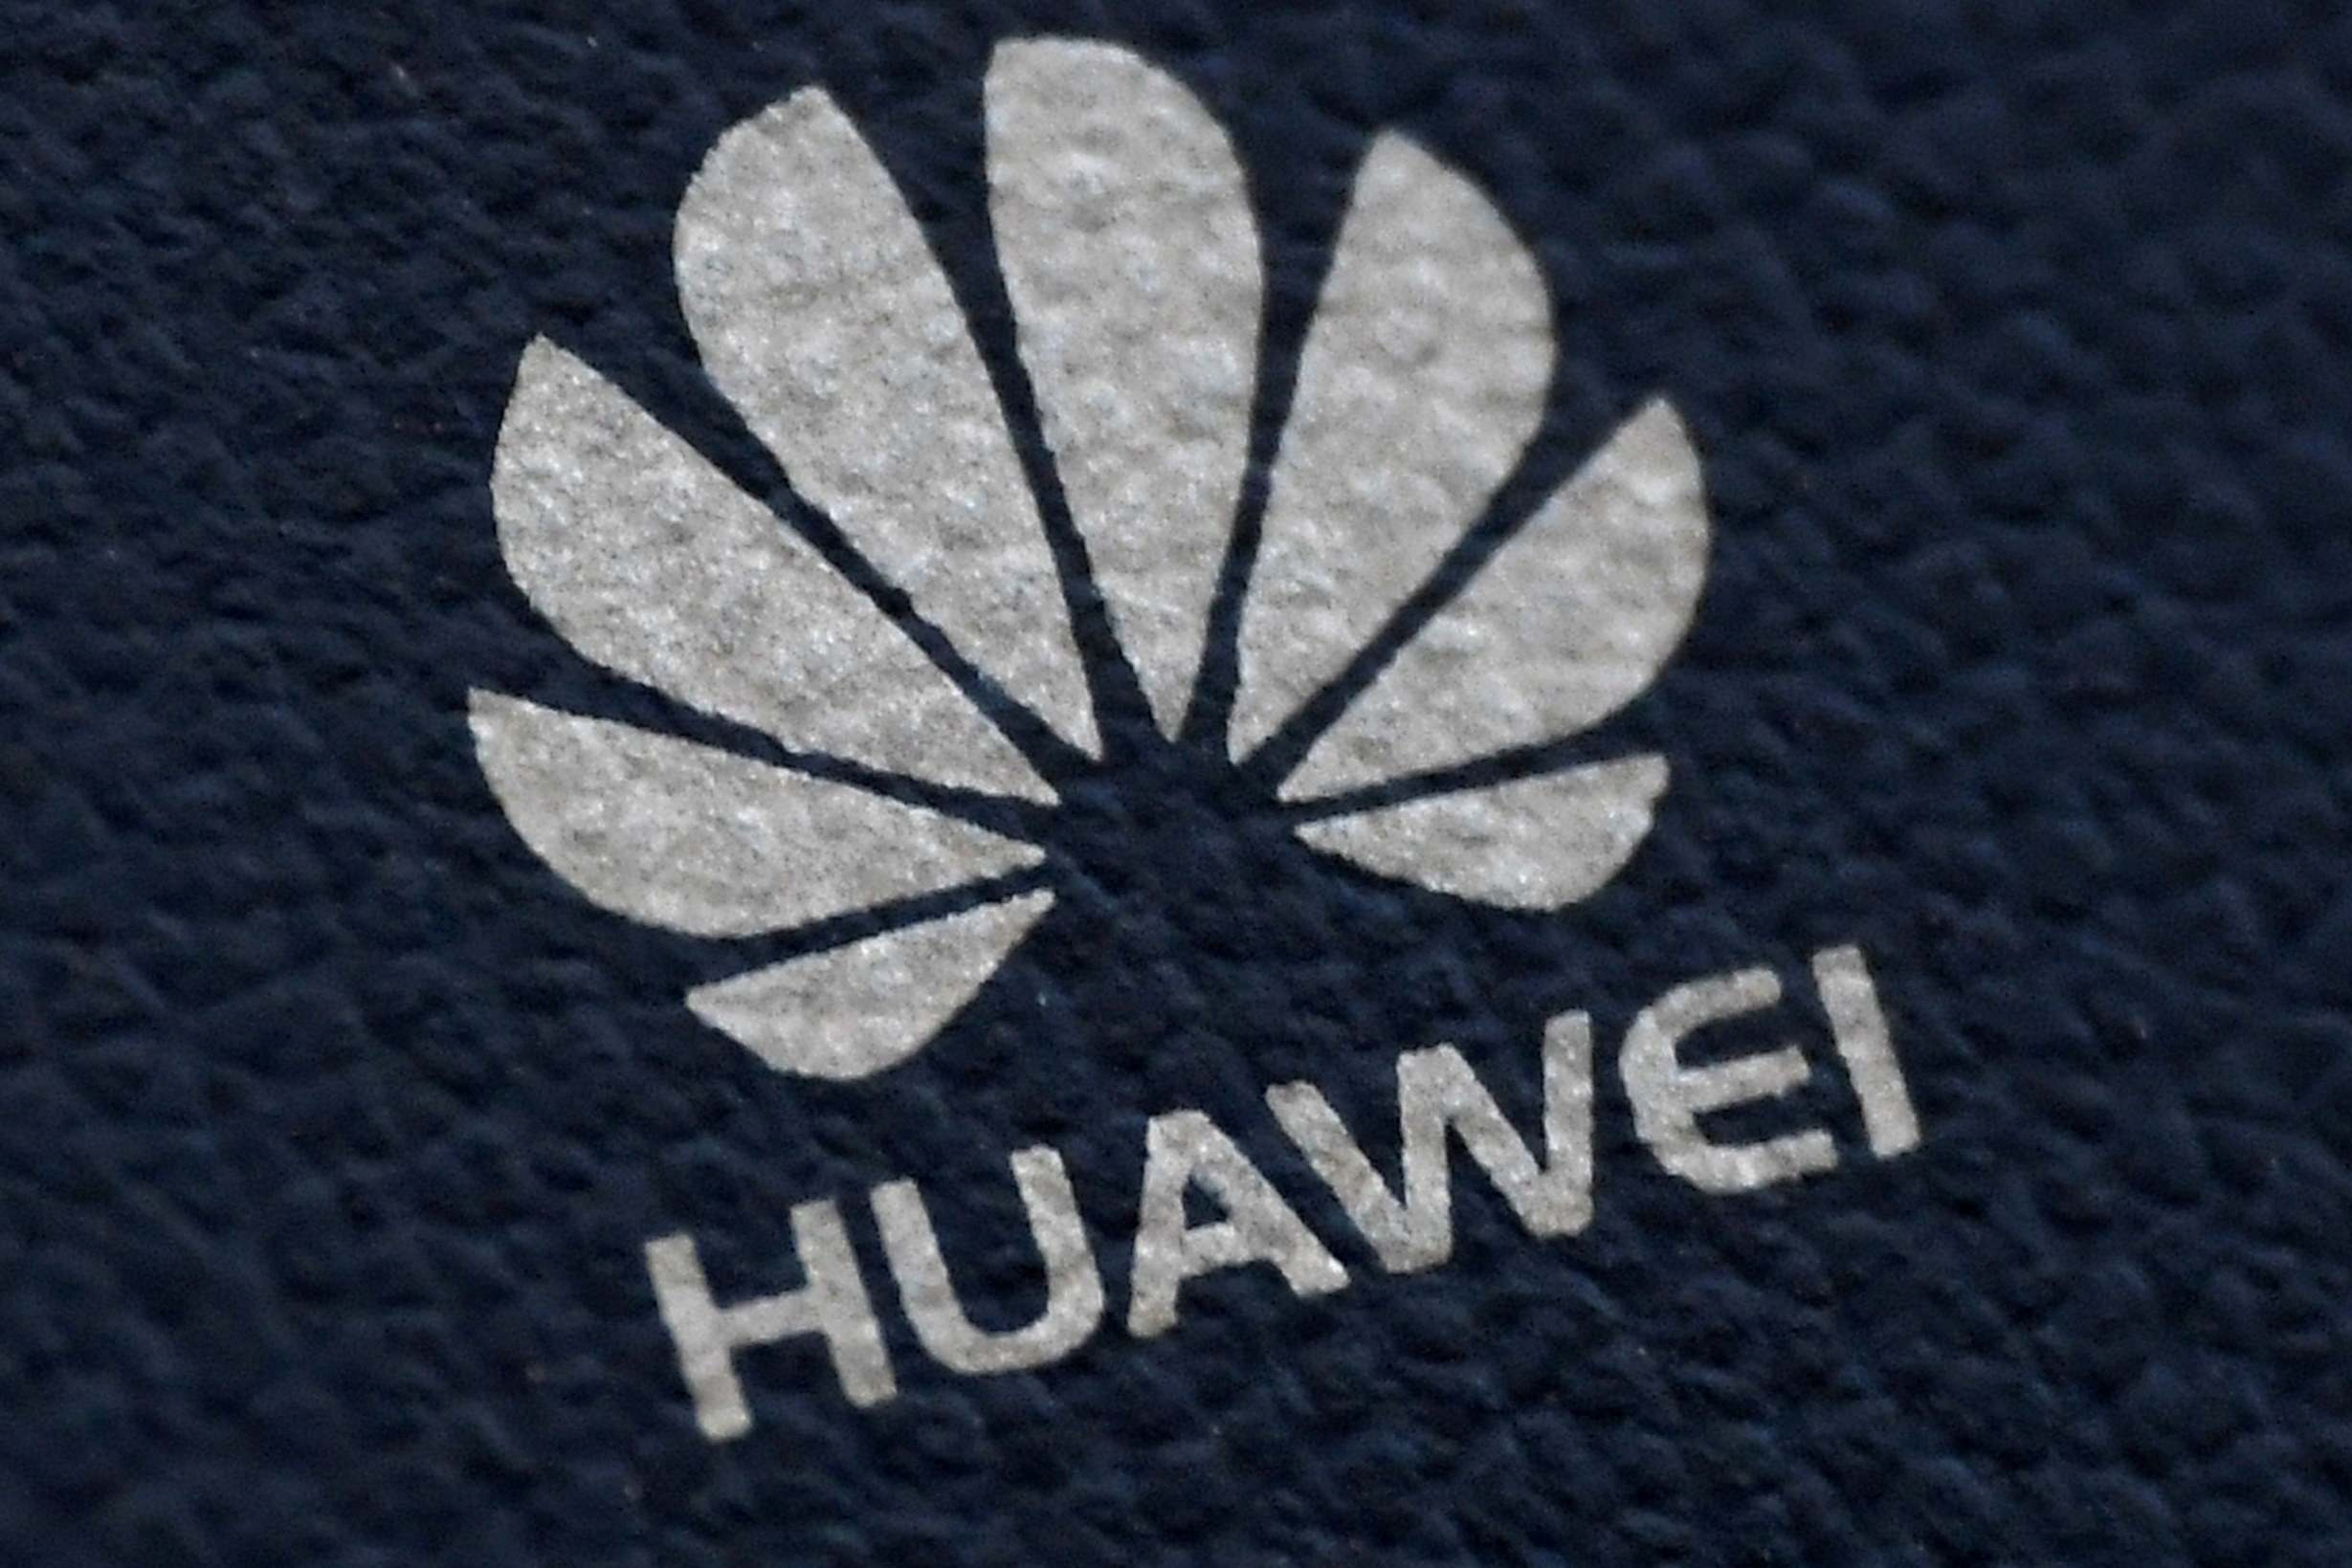 Huawei says it's 'open to discussions' with No10 amid 5G ban reports